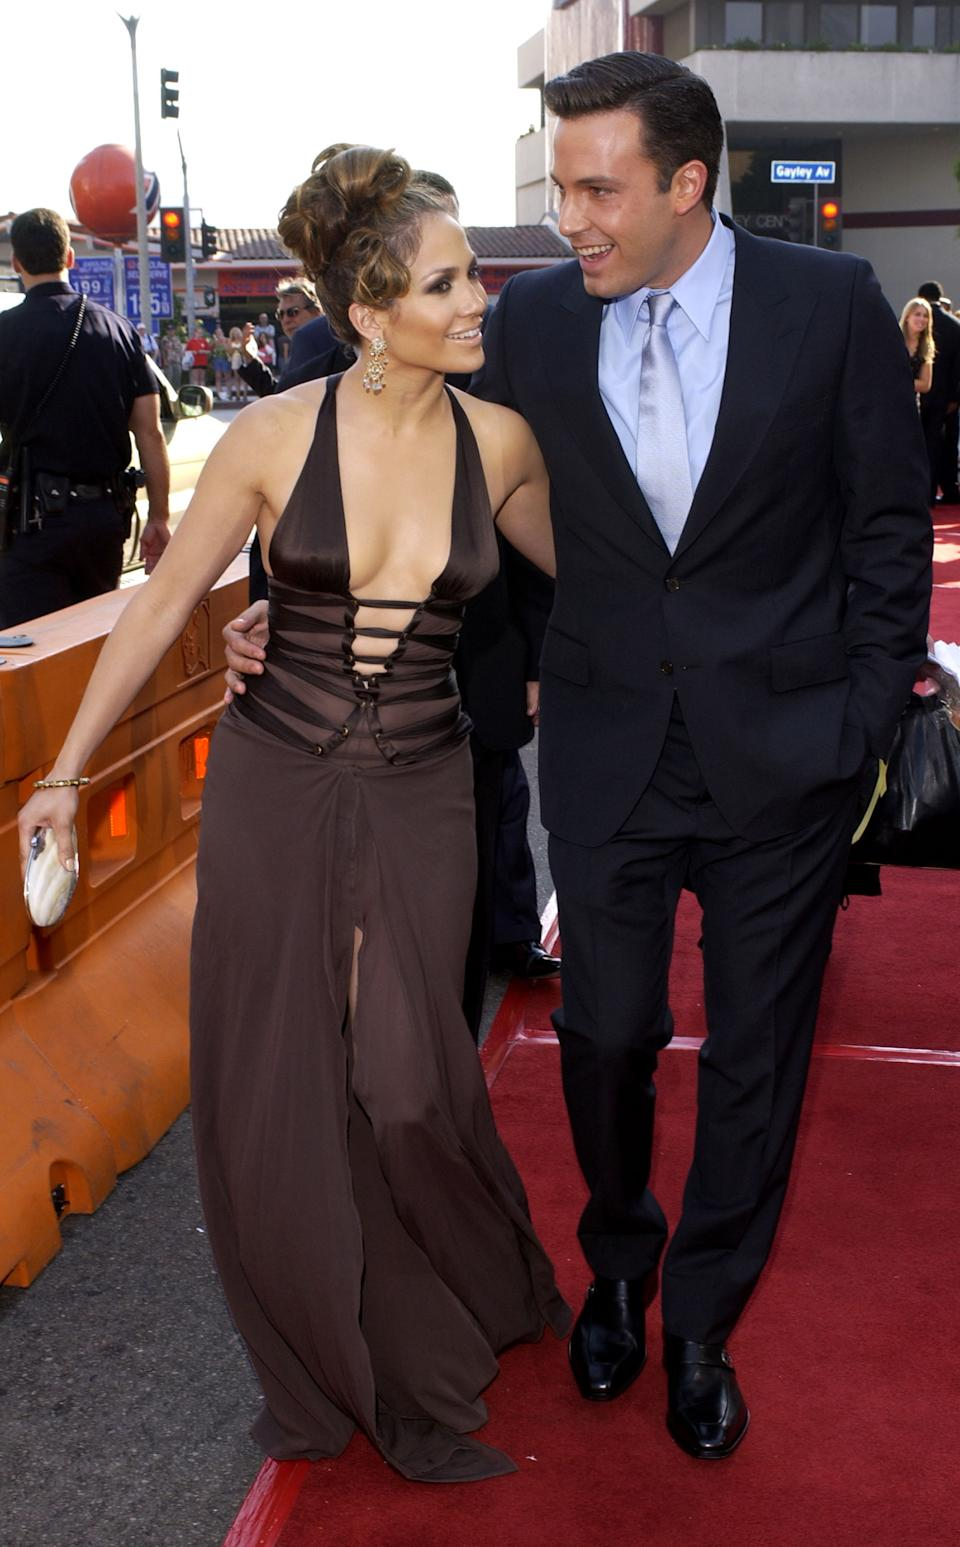 """<p>""""She is just into him unbelievably. Leaning into him, she's crazy about him on the red carpet. You can just tell she is absolutely crazy smitten."""" - Dr. Lillian Glass, body language expert (Photo by L. Cohen/WireImage)</p>"""